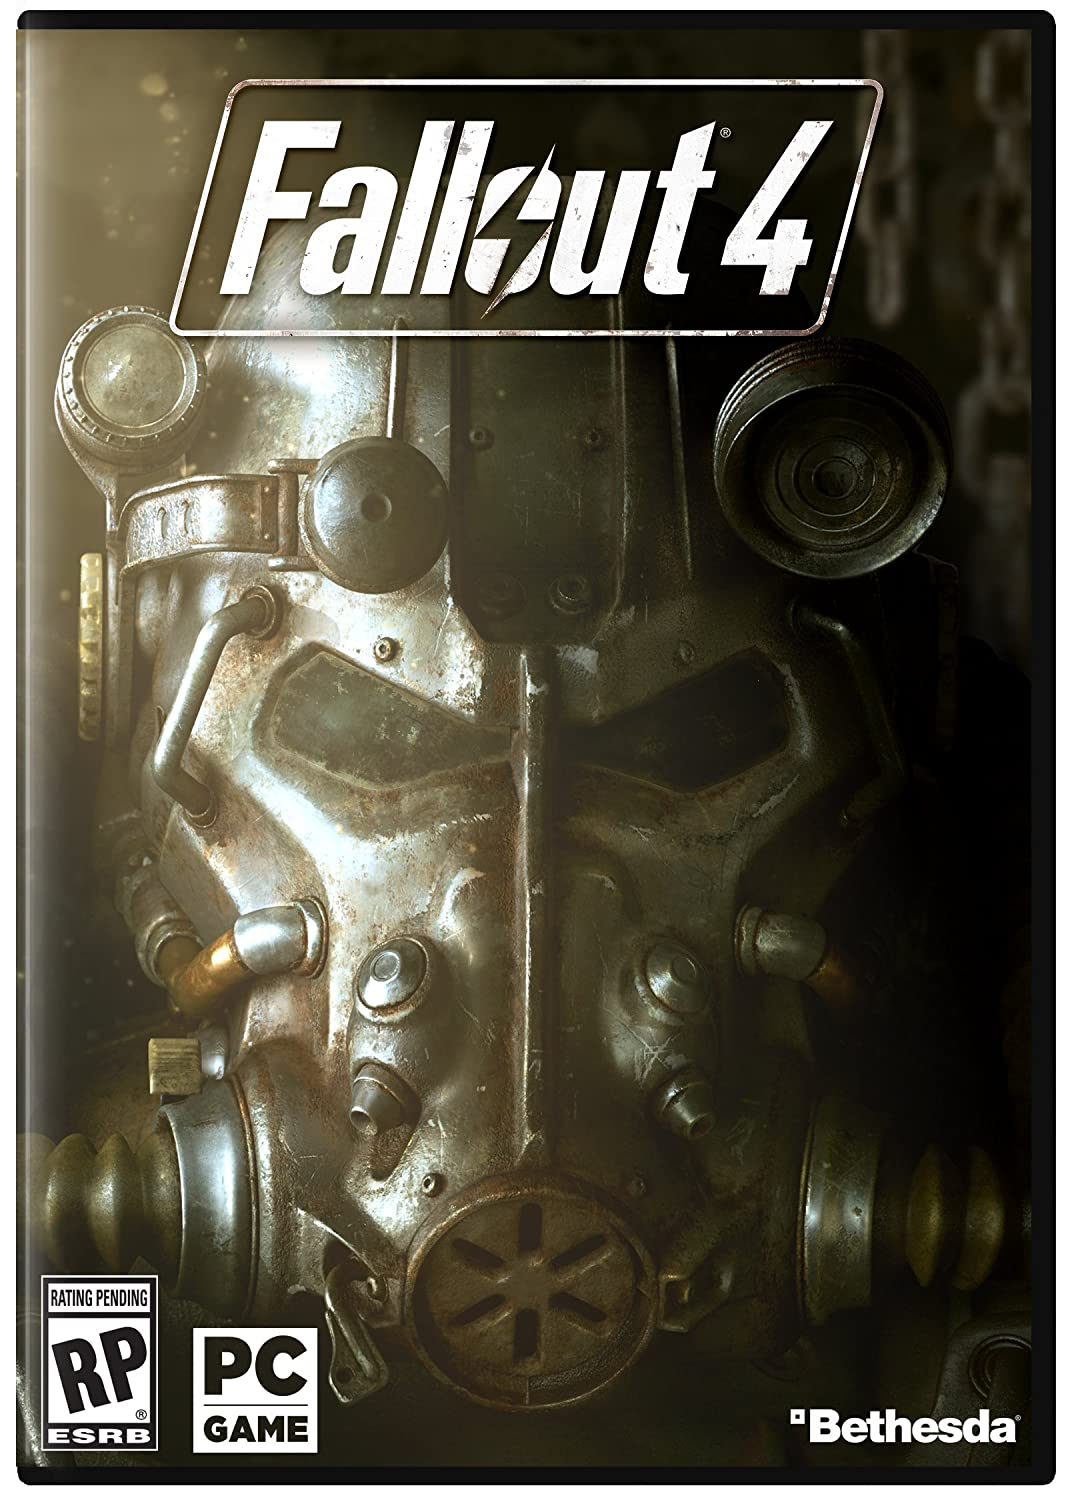 Fallout 4 - PC (Download Code)